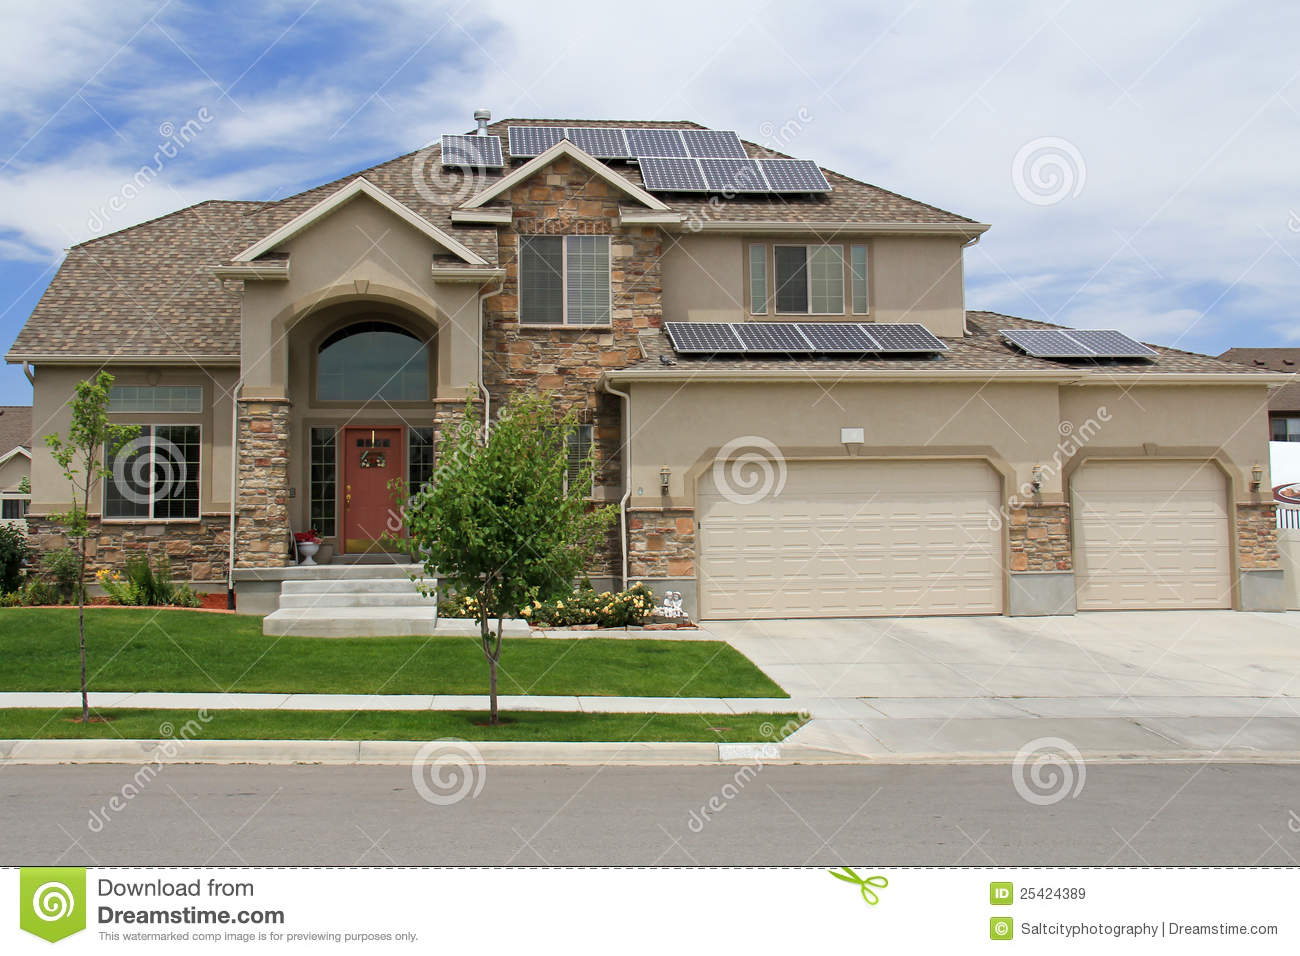 solar powered stock tank stock photo image 43064498